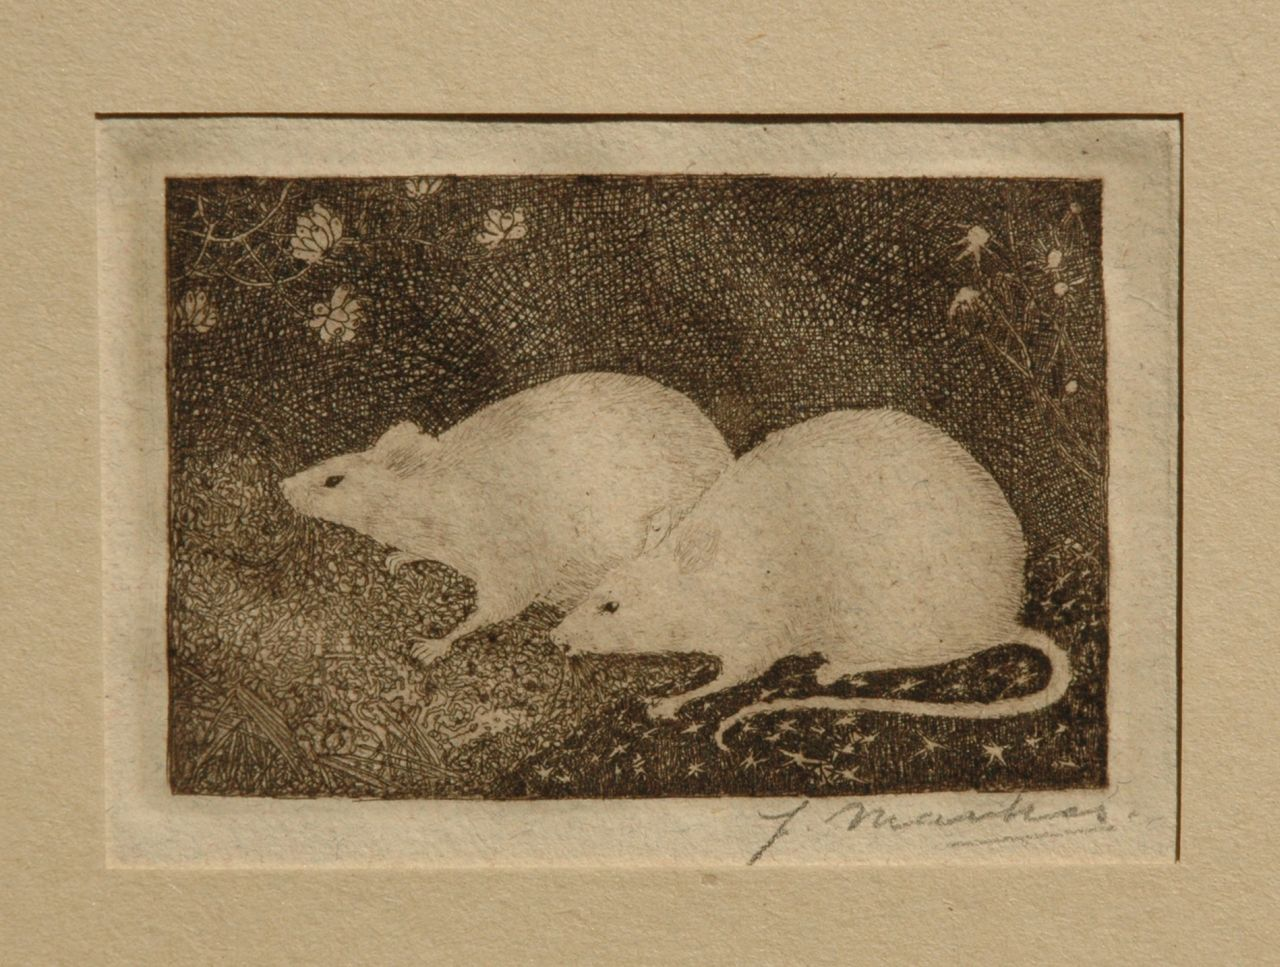 Mankes J.  | Jan Mankes, Two mice, etching on paper 6.8 x 10.2 cm, signed l.r. (with pencil) and executed in 1916